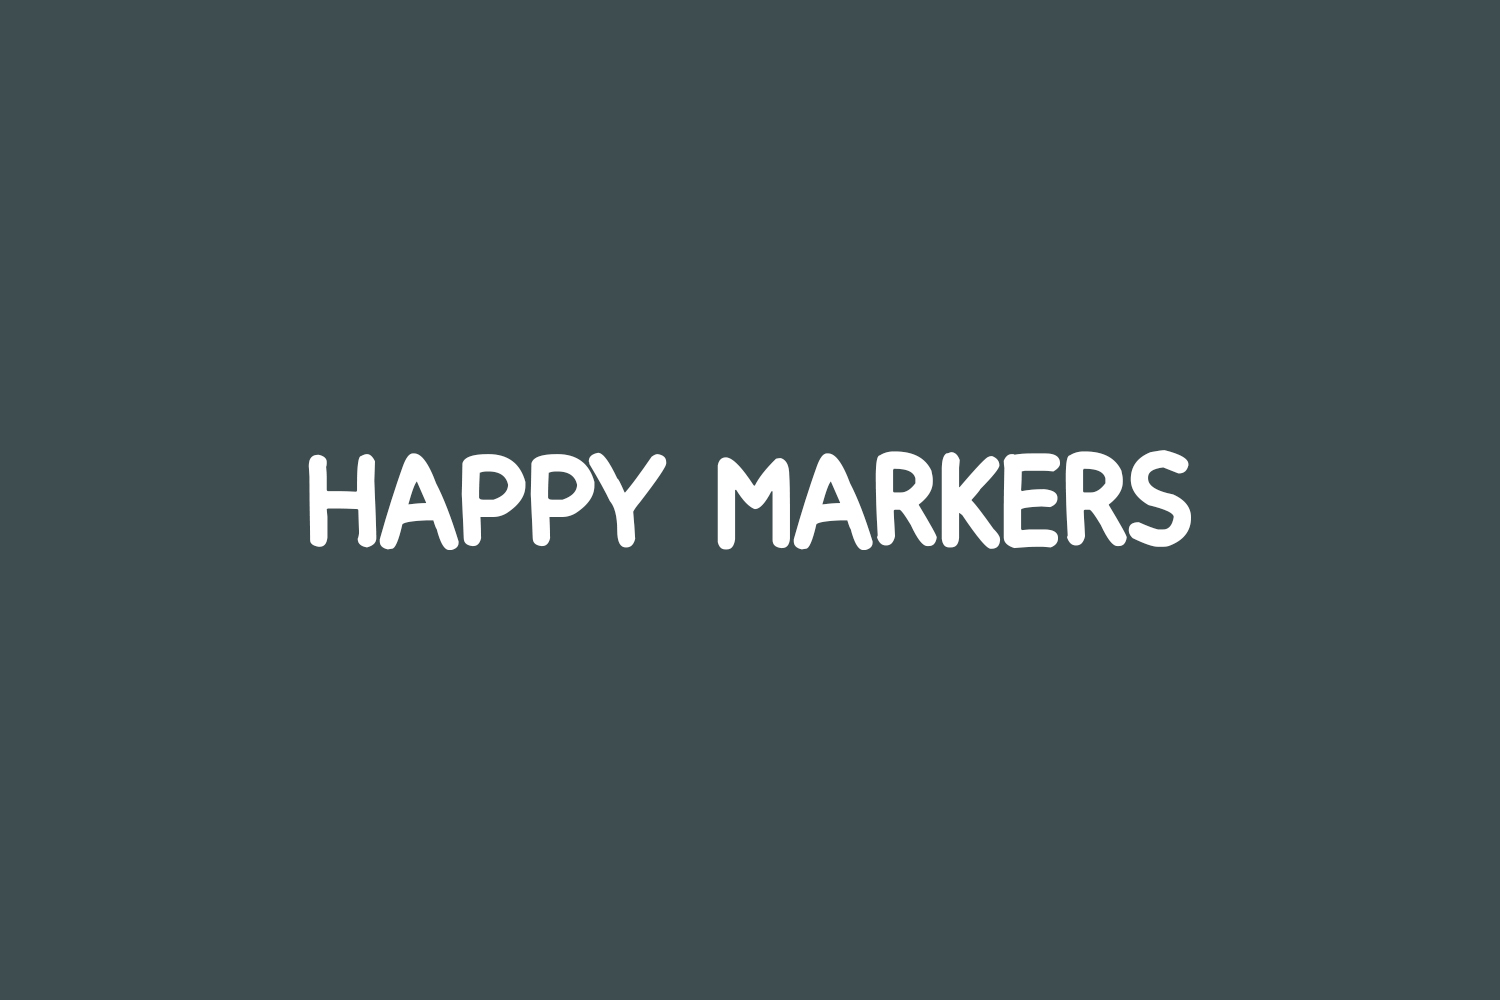 Happy Markers Free Font